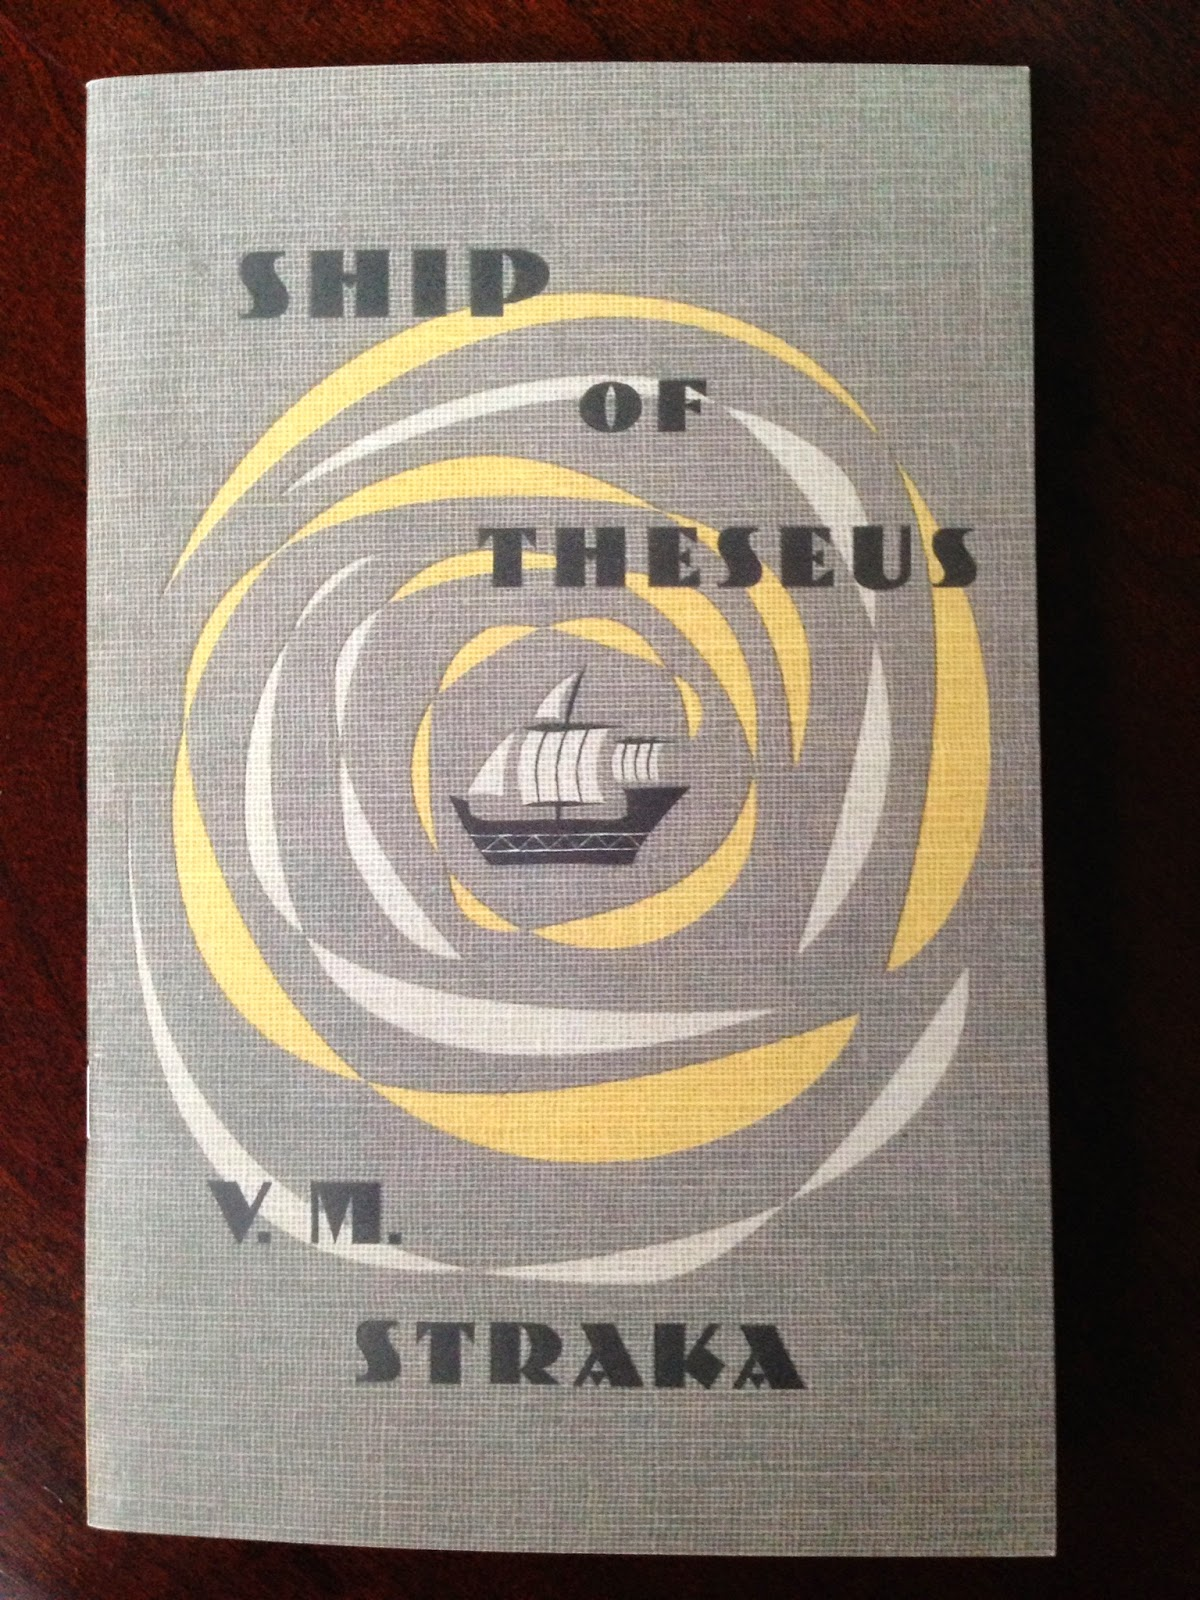 the ship of theseus